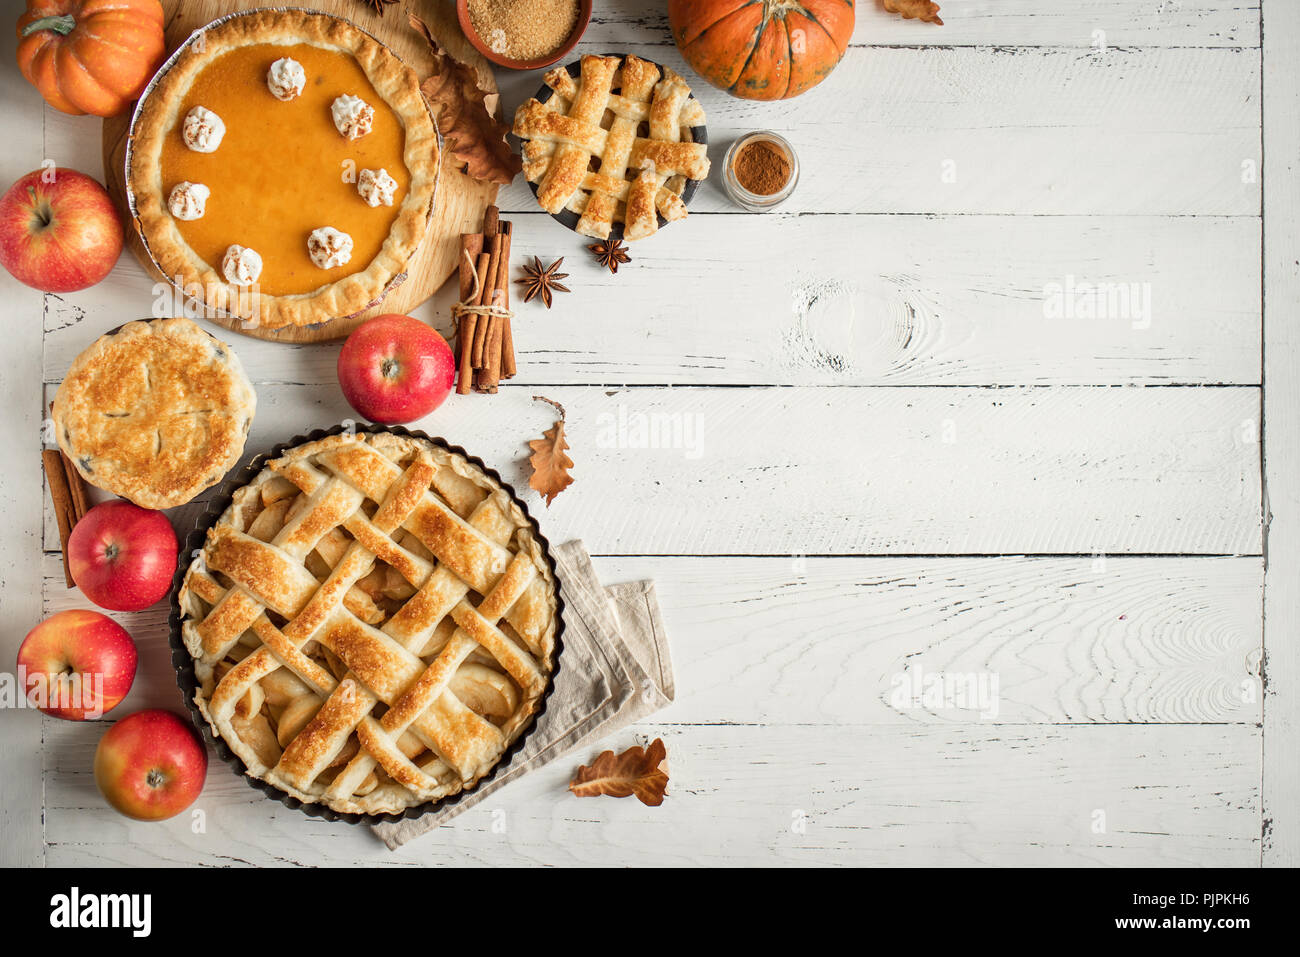 Thanksgiving pumpkin and apple various pies on white, top view, copy space. Fall traditional homemade apple and pumpkin pie for autumn holiday. Stock Photo